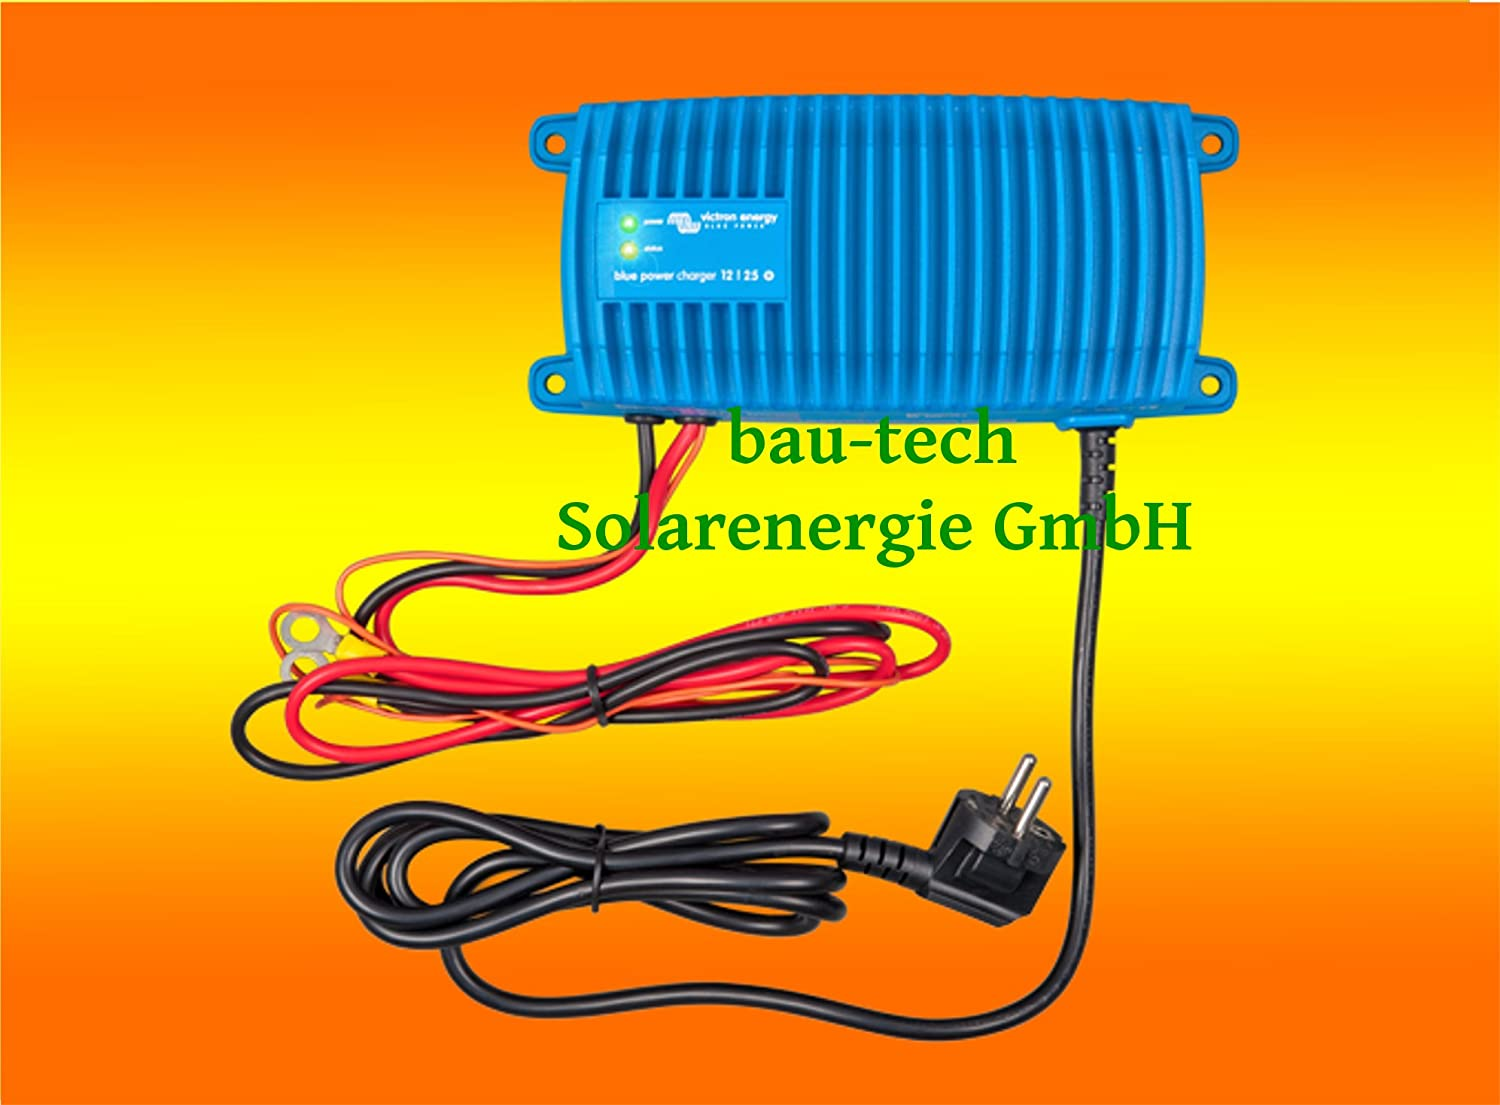 Batterieladegerä t 12Volt / 17Amper Victron Energy Blue Power Charger IP65 von bau-tech Solarenergie GmbH VIBAL12V017A